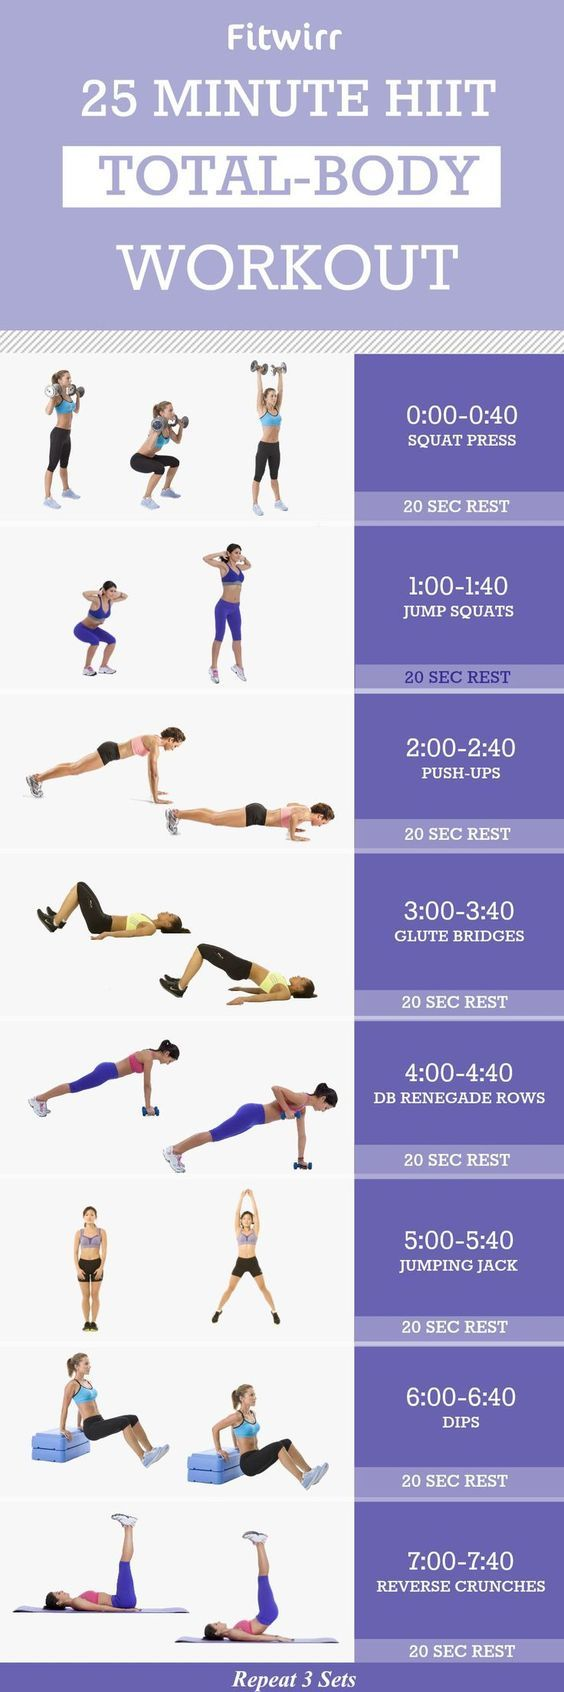 If you're looking to burn calories fast HITT is the way to go. With High-intensity interval training, you can workout less and gain more. Here's a 25 minute total-body HIIT-Workout to get you started. #HIIT: